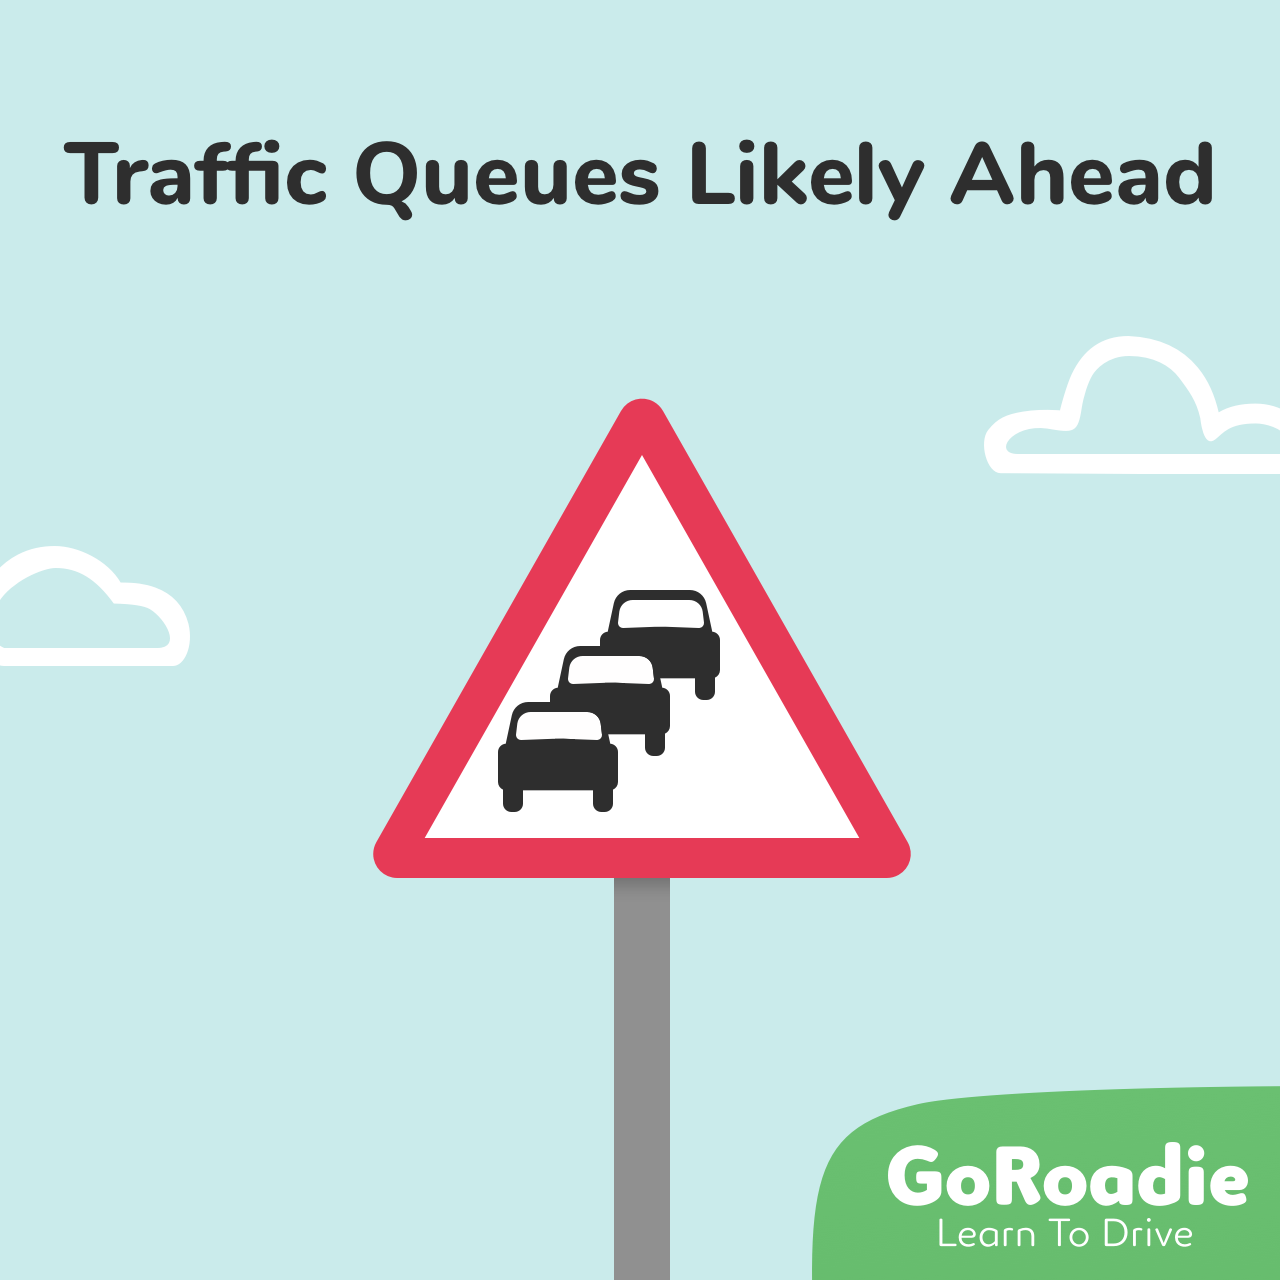 Traffic Queues Likely Ahead traffic sign illustration